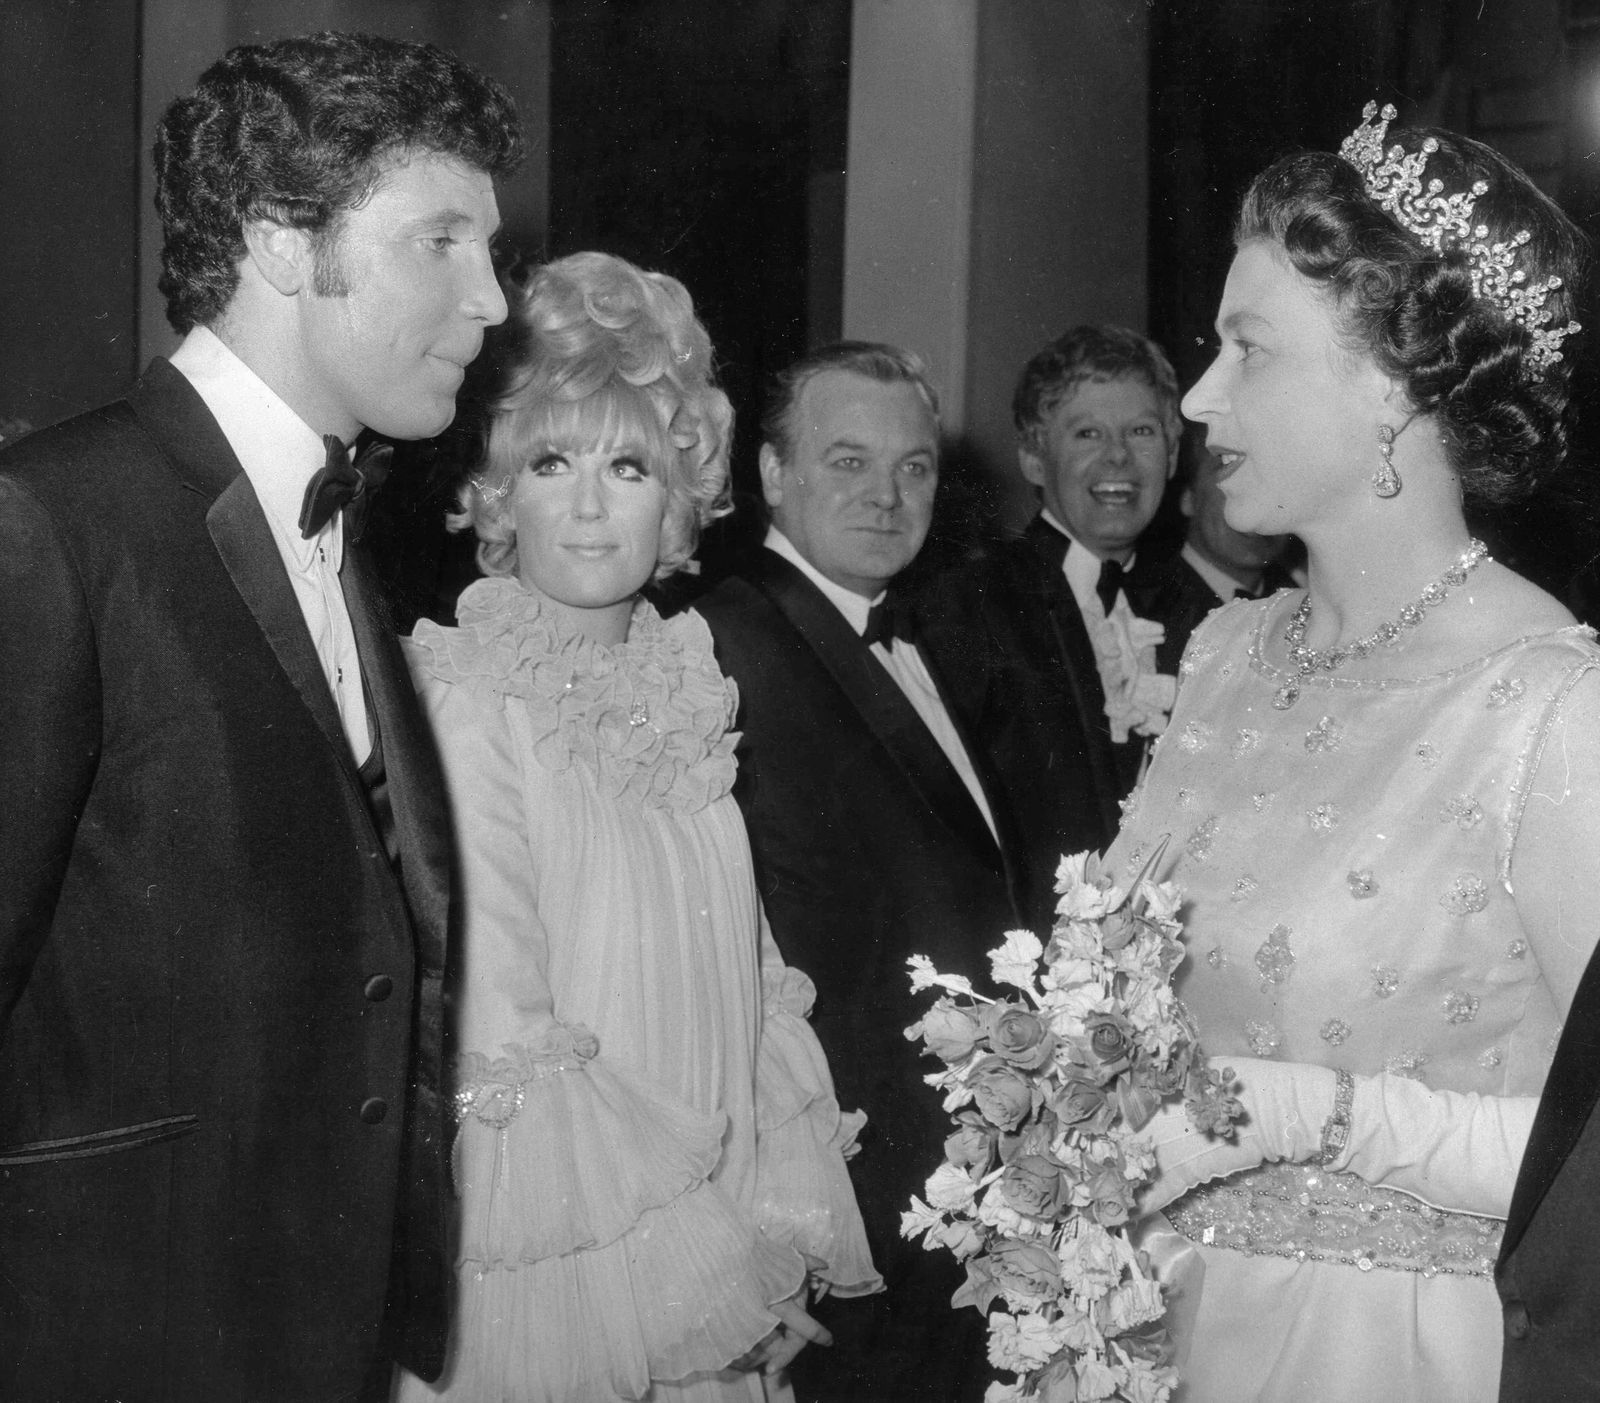 Feb 9 1972 London England U K Singer TOM JONES meets QUEEN ELIZABETH II at a royal performa